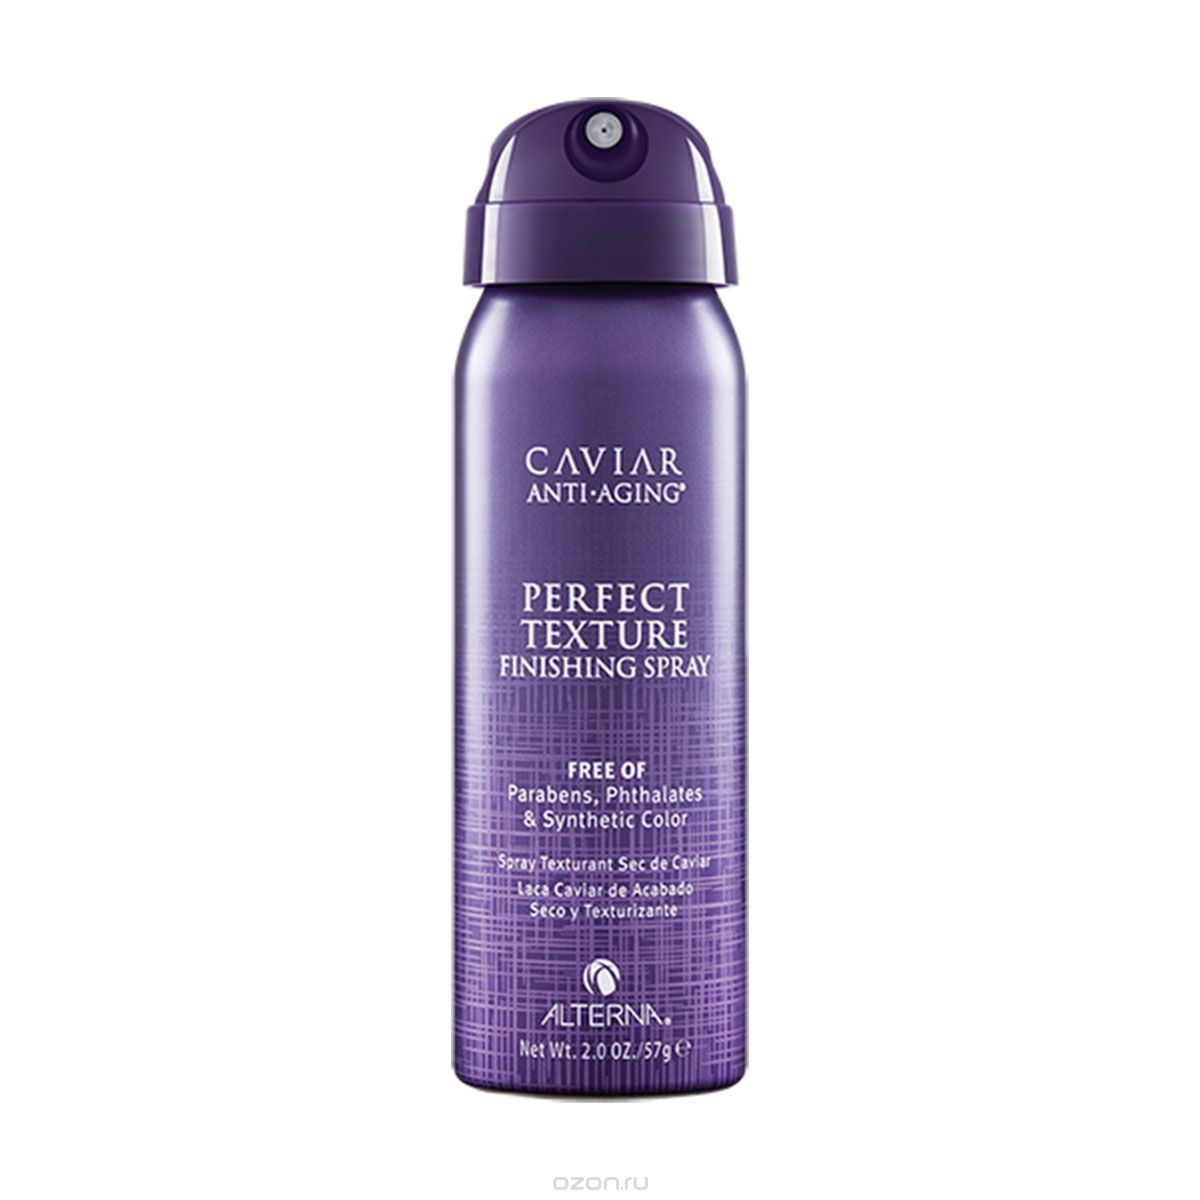 "ALTERNA Спрей Идеальная текстура волос / Anti-aging Perfect Texture Finishing Spray Travel CAVIAR 50 мл alterna спрей ""абсолютная термозащита"" caviar anti aging perfect iron spray 122ml"